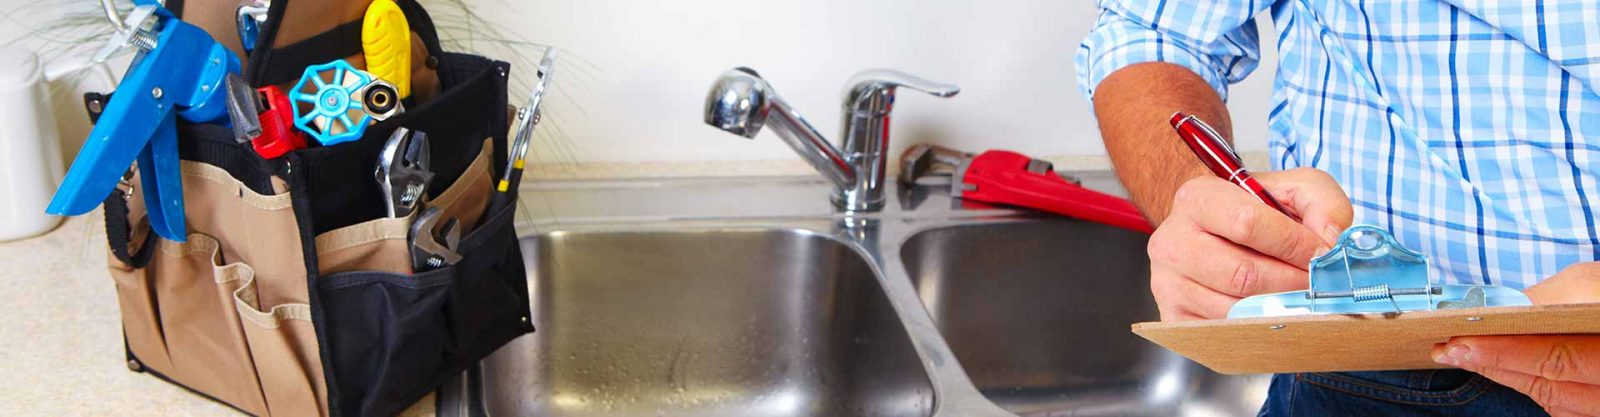 residential plumbing services sunshine coast